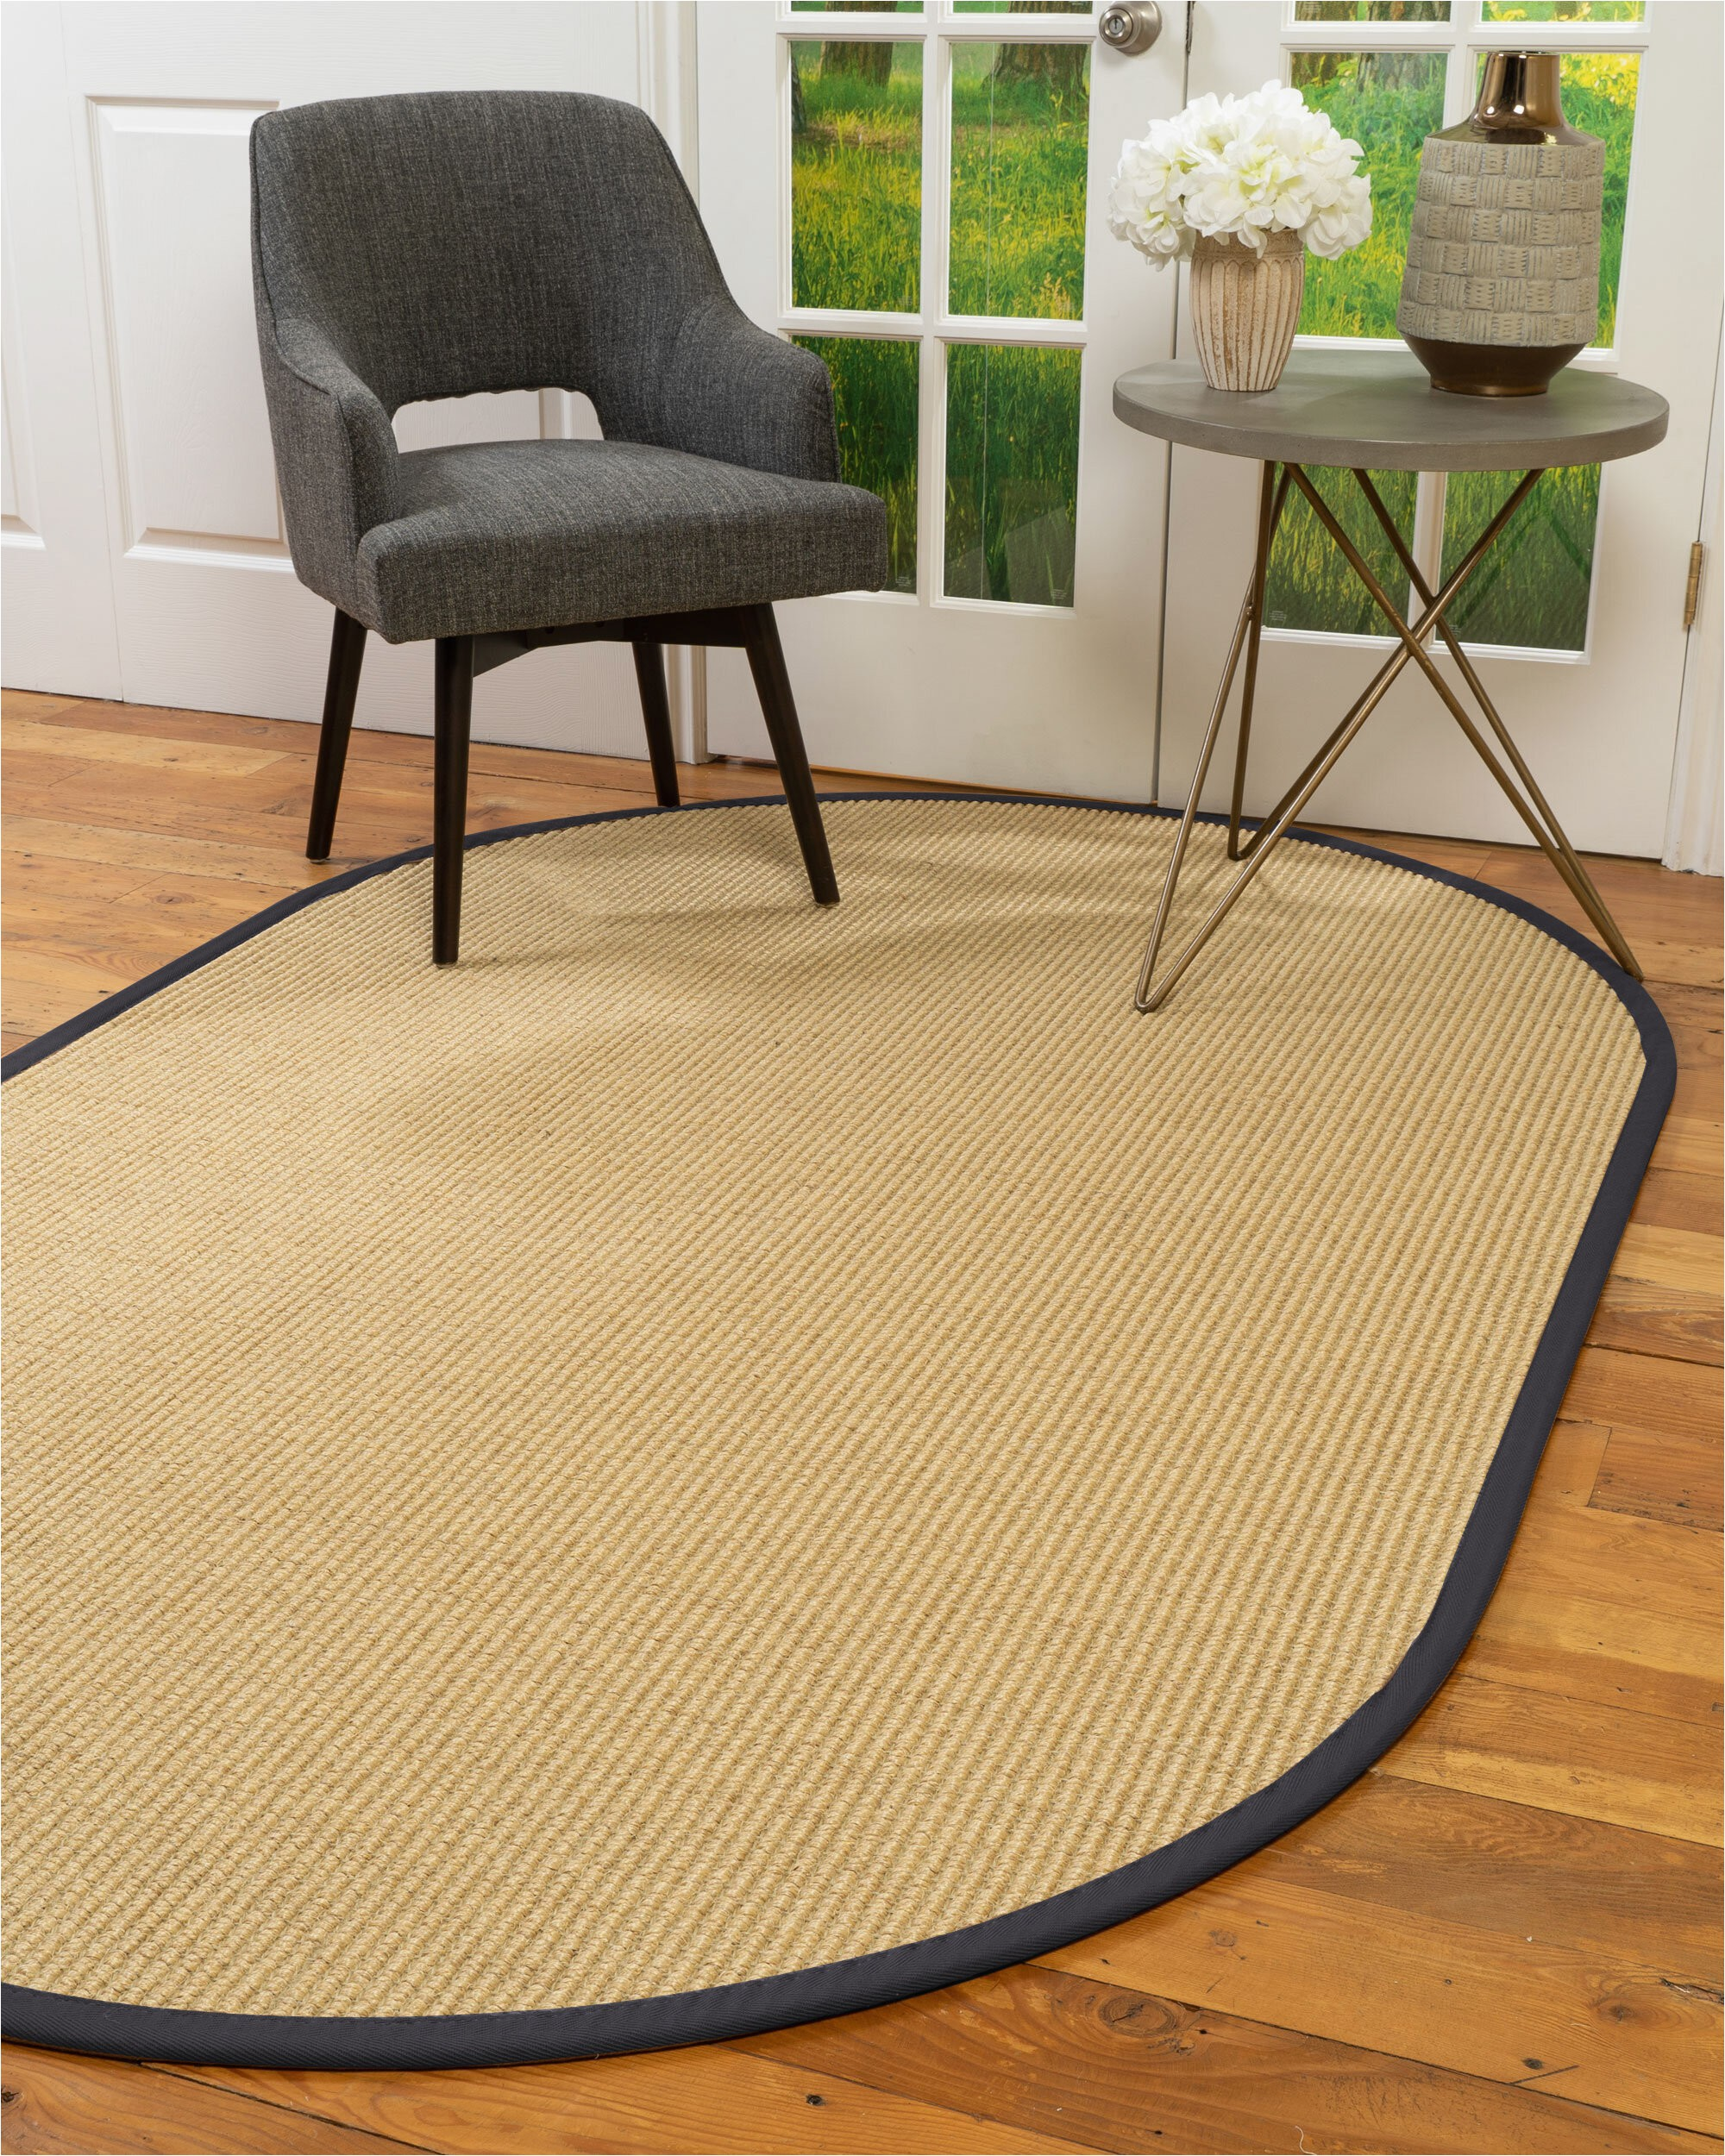 Sisal Rug with Blue Border Natural area Rugs Natural Fibre Handmade Lucca 5 Octagon Beige Sisal Rug Midnight Blue Border